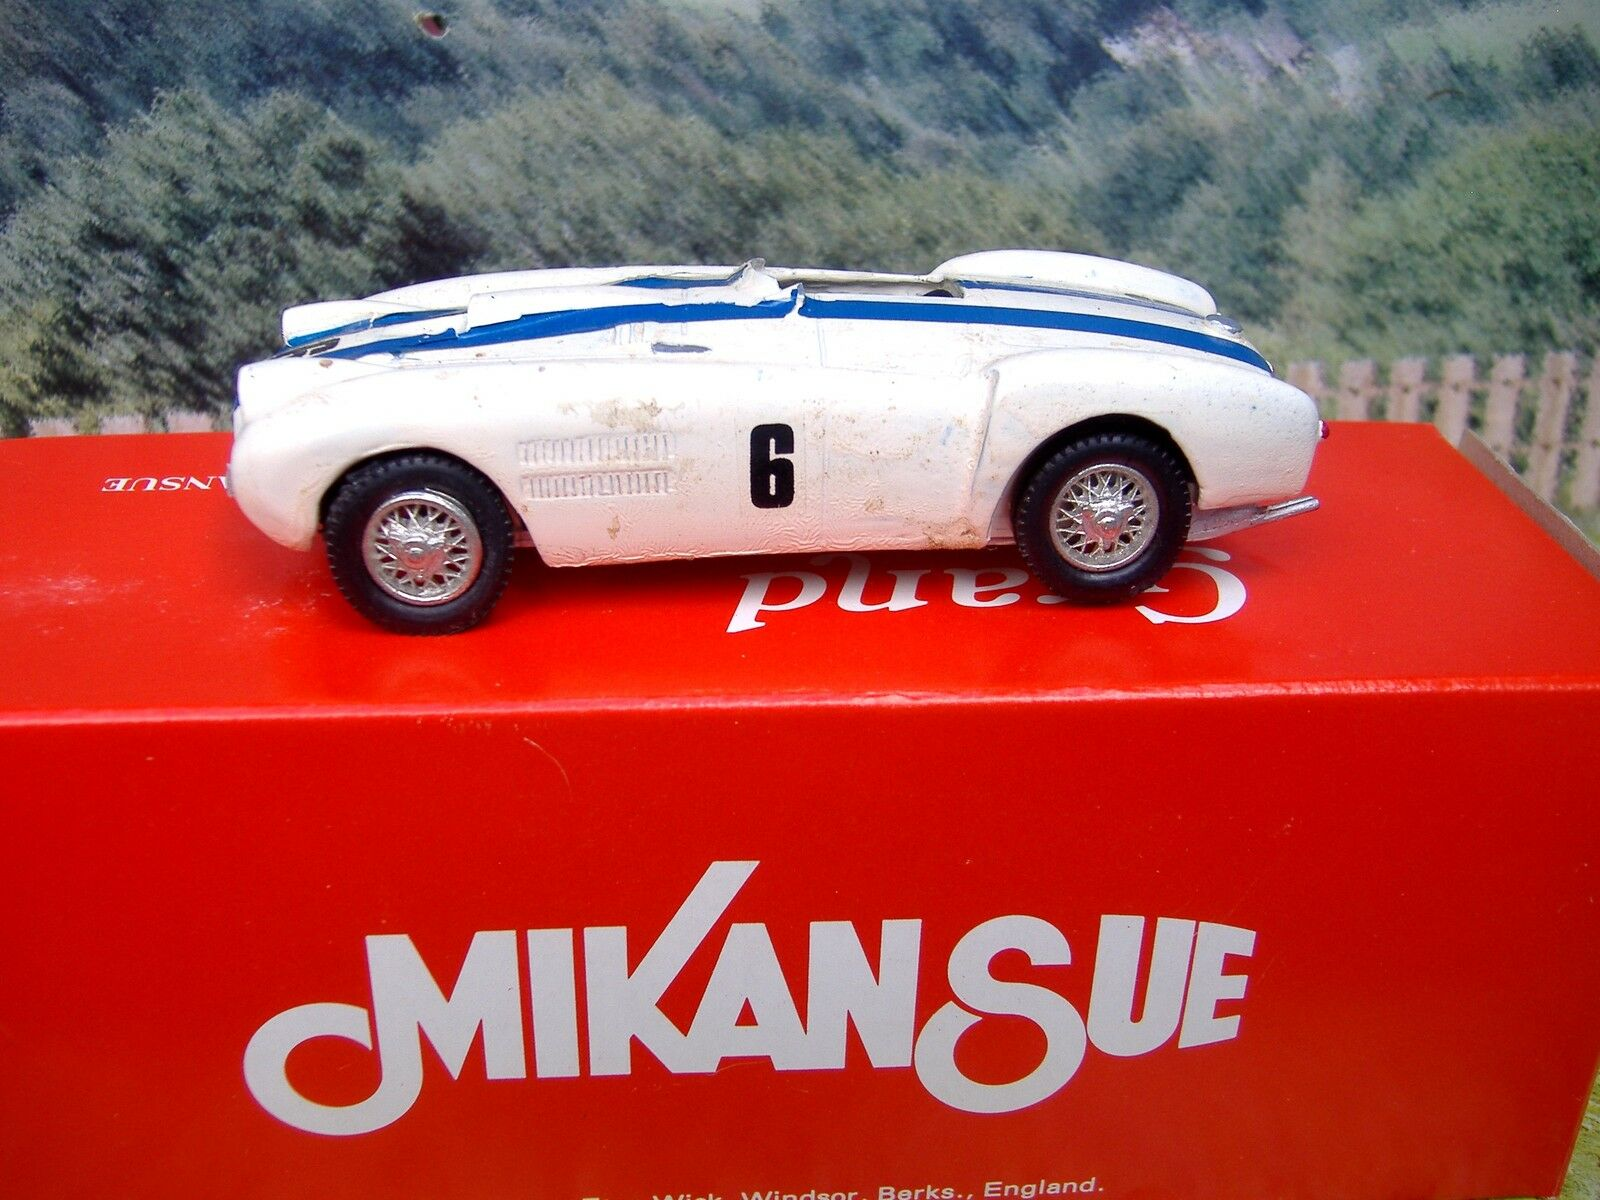 1 43 Mikansue Competition (England) Ferrari LM 1954  Handmade White Metal  Kit